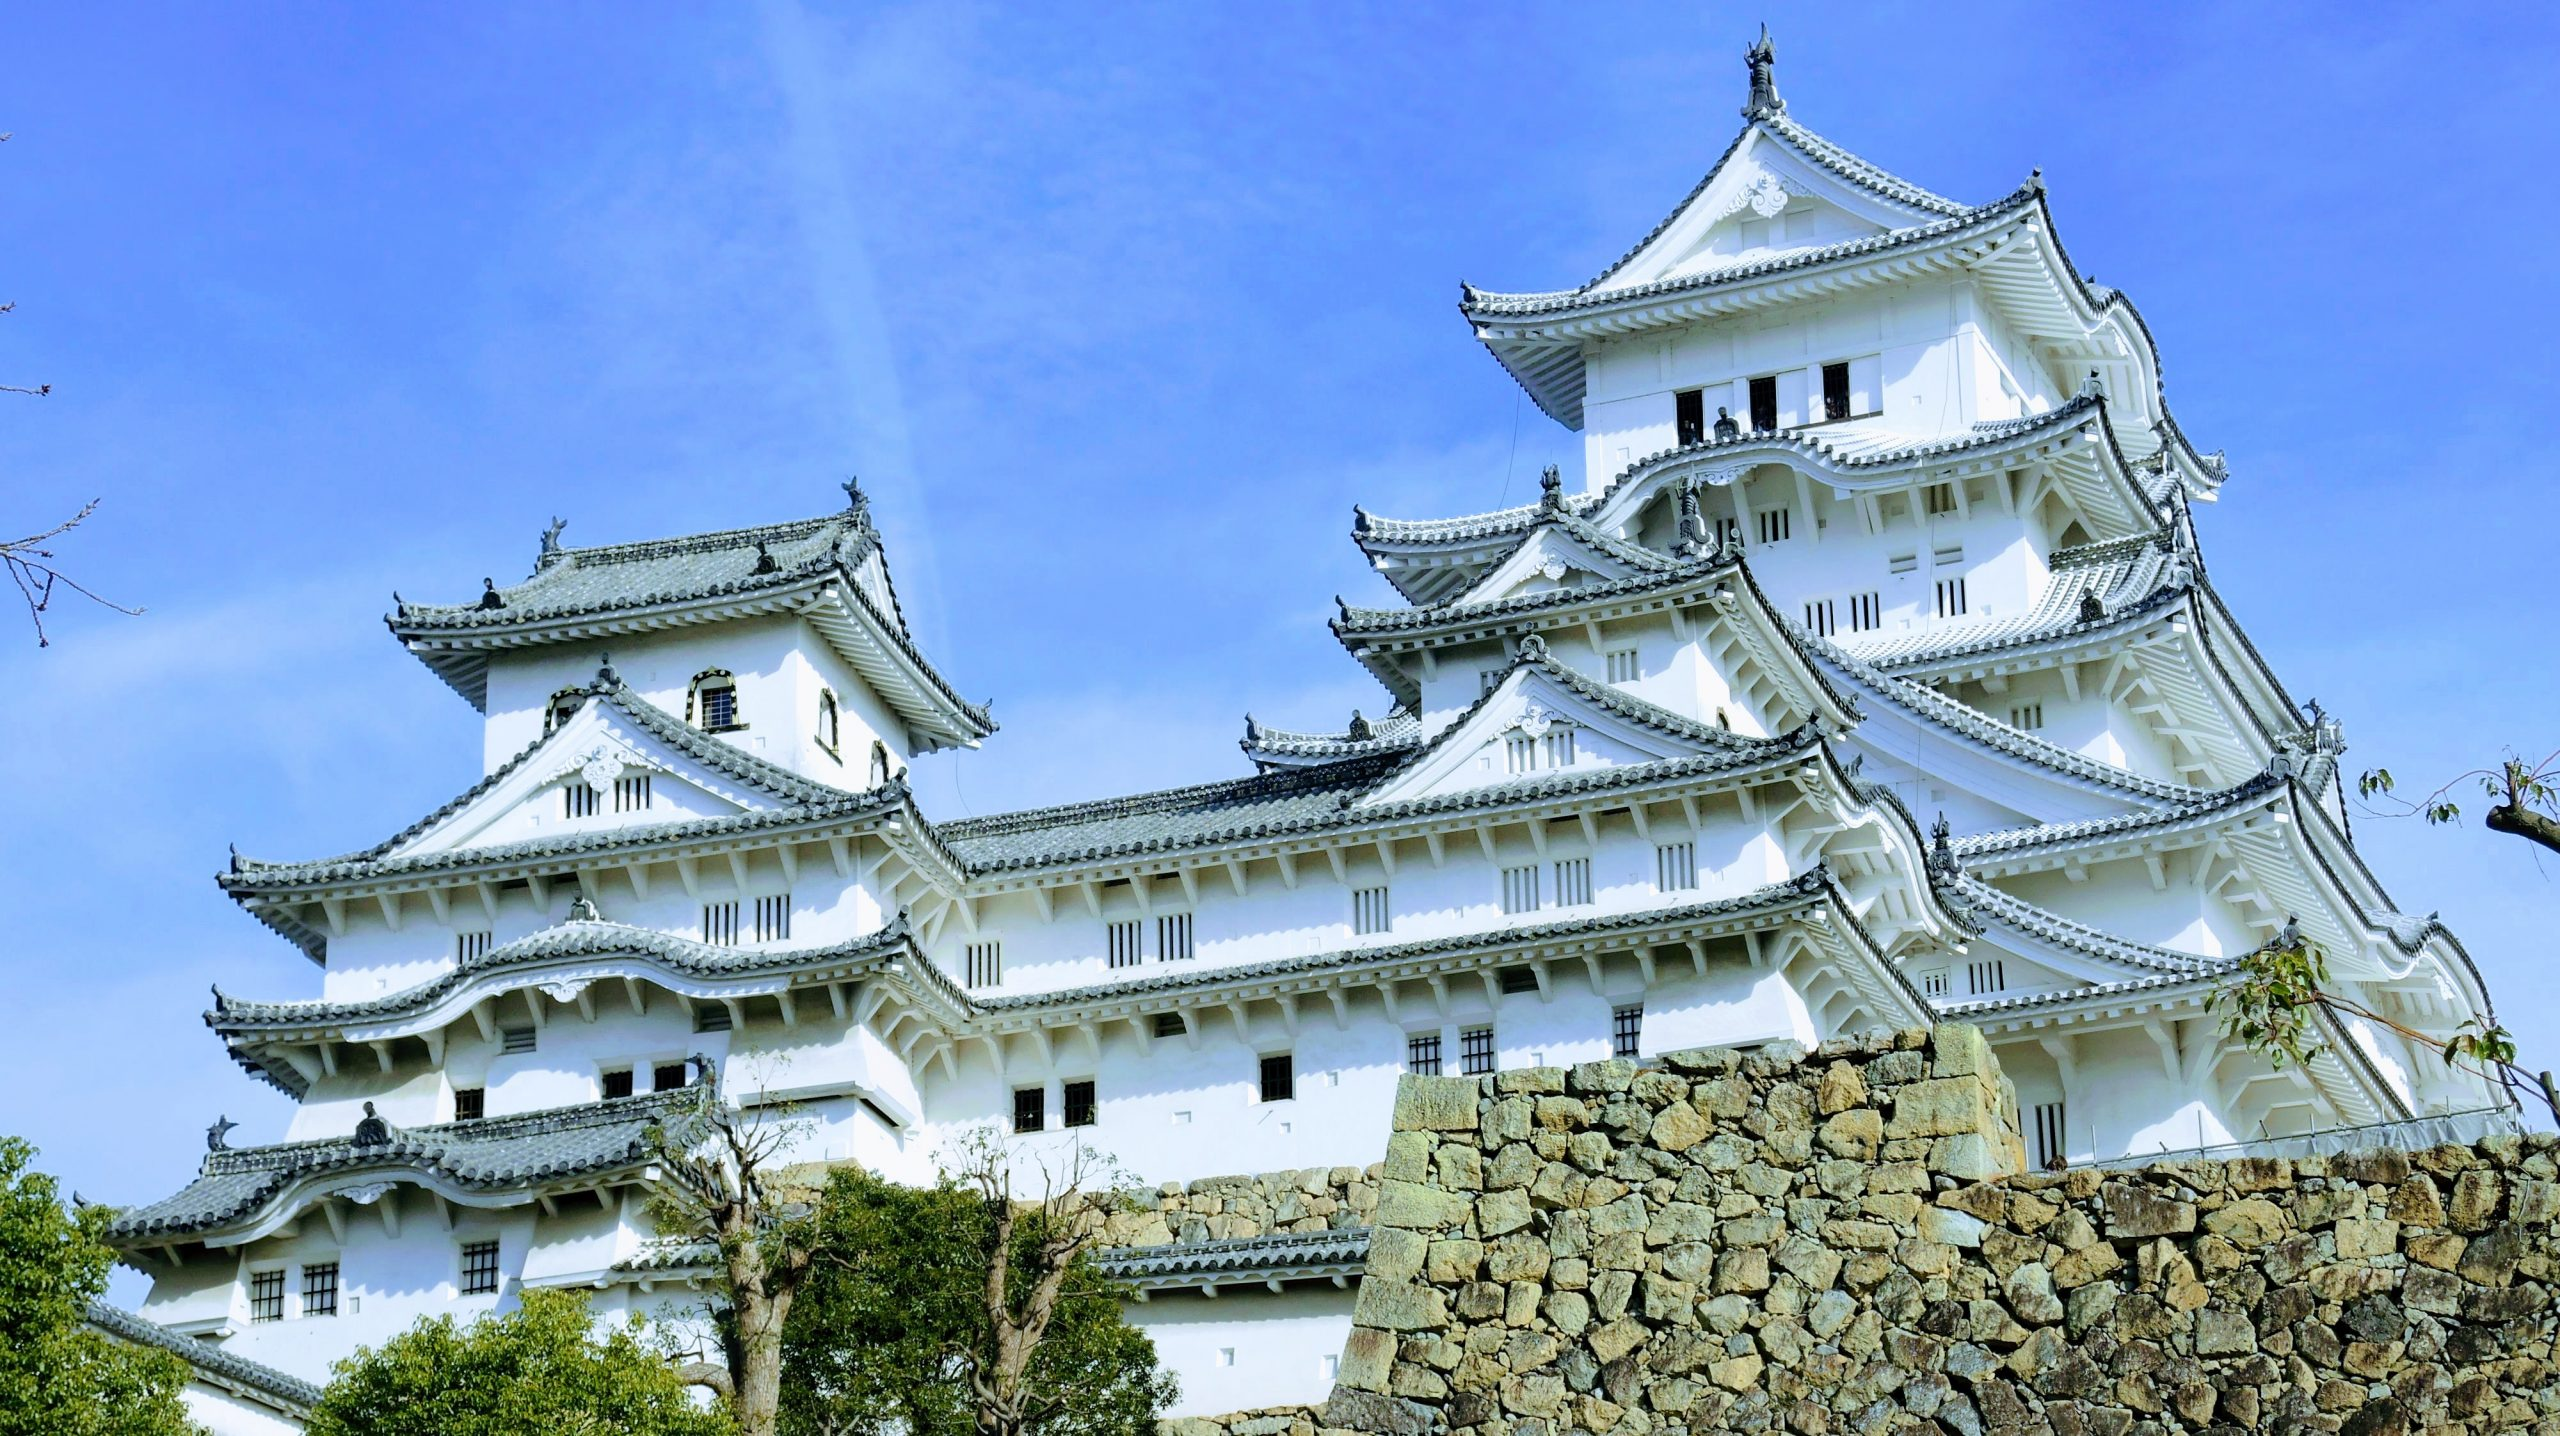 A Week In Kansai Himeji Castle The Real Japan Rob Dyer